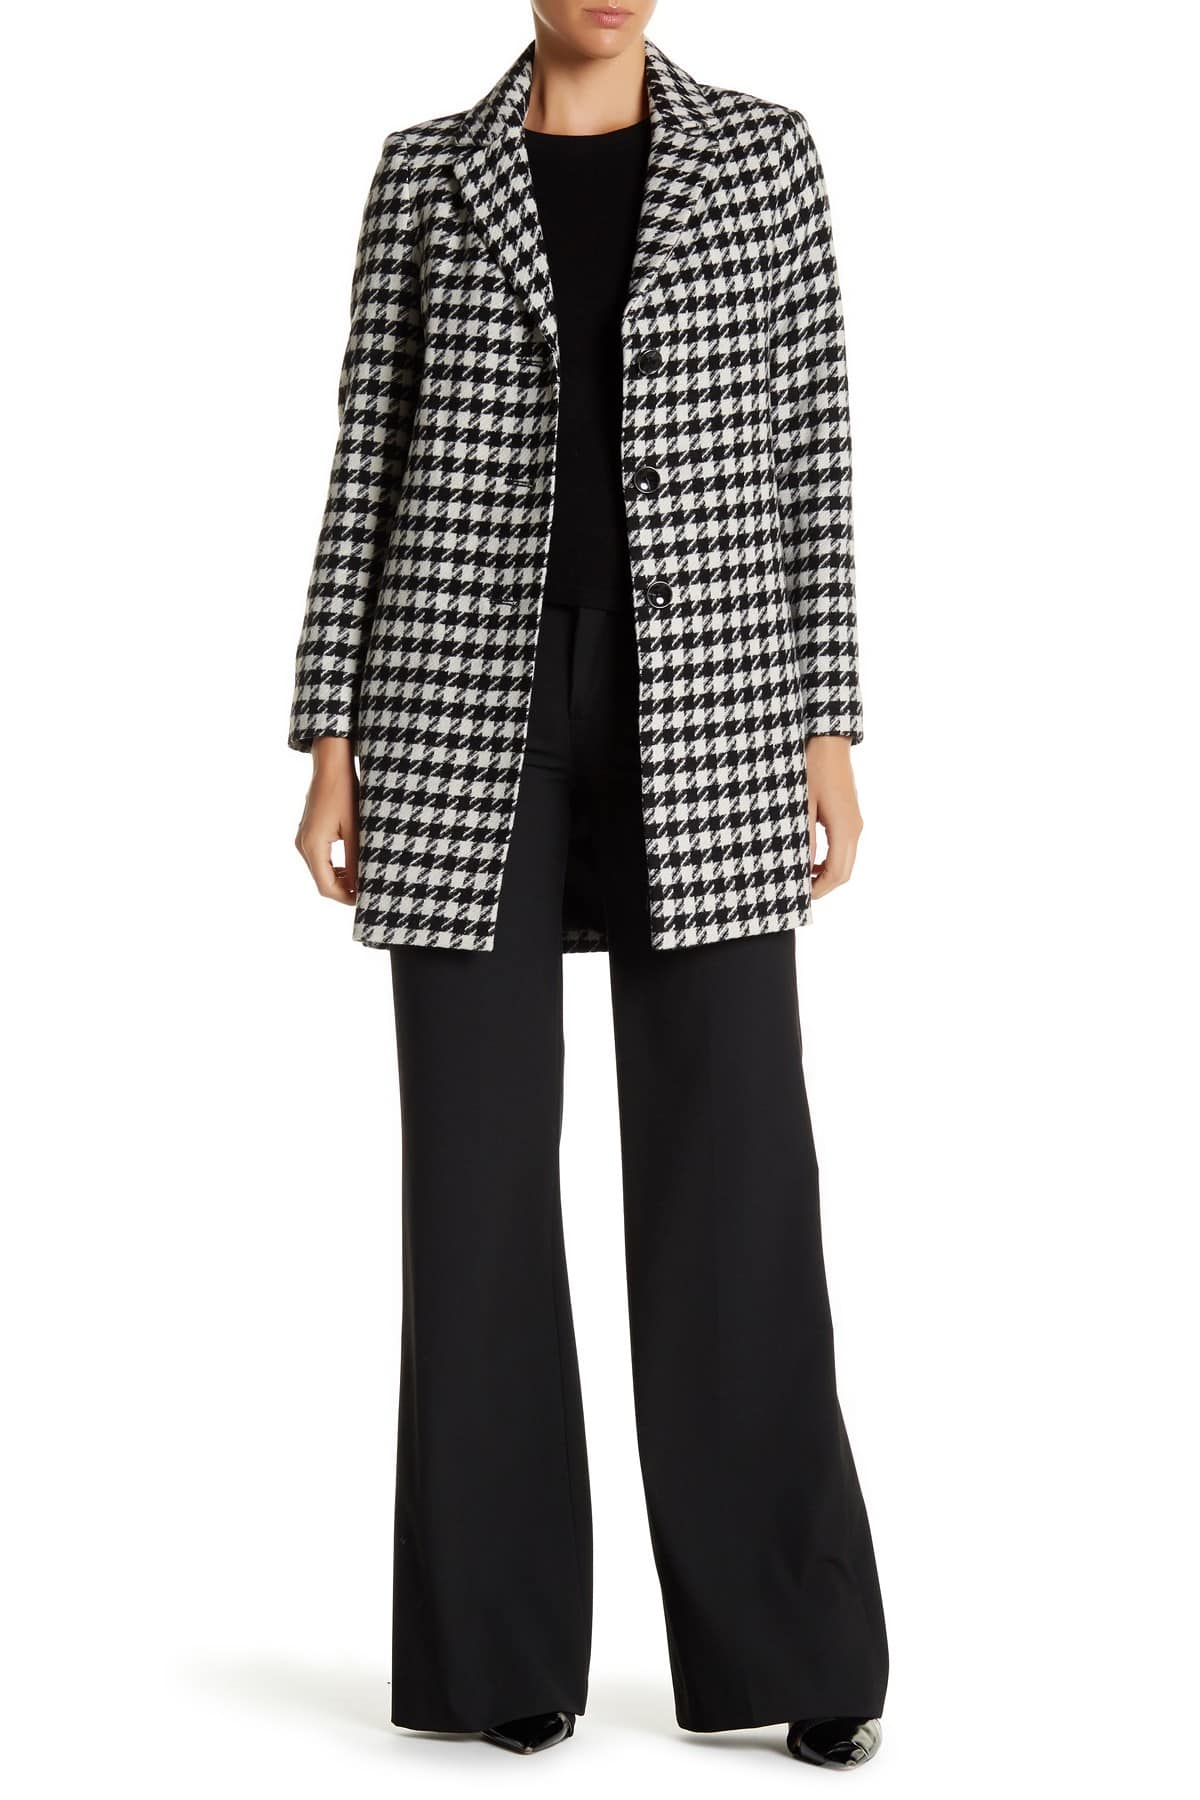 Save ~90% on DKNY Ladies' Coats @ Nordstrom Rack (from $27)